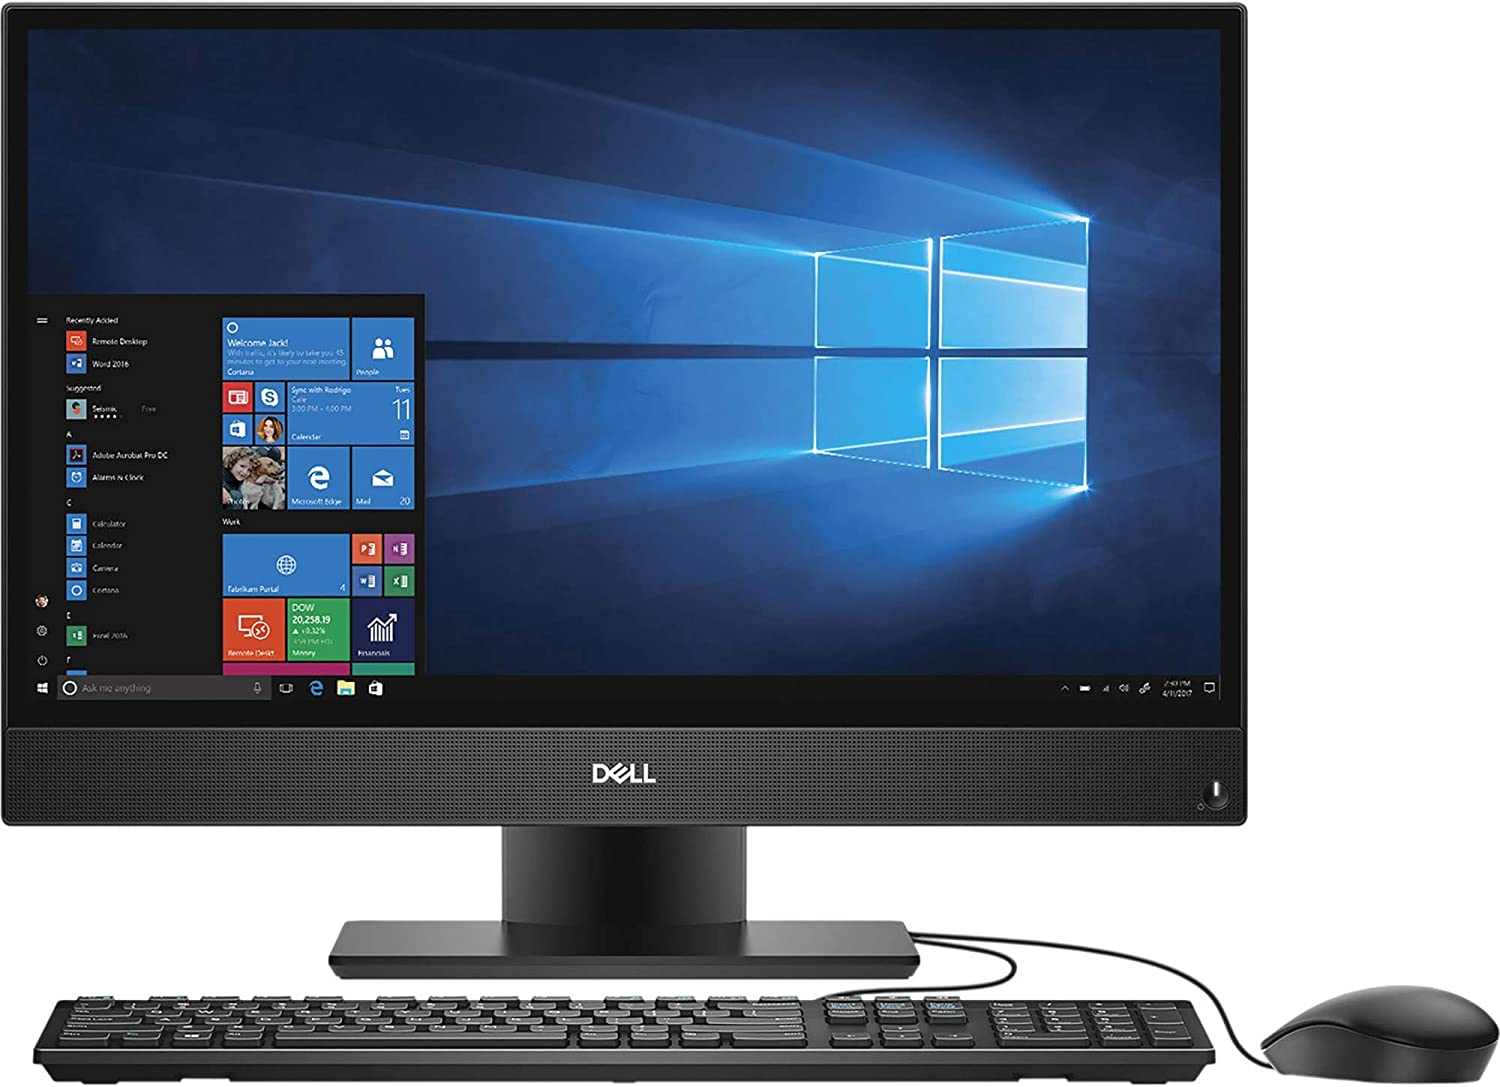 "Dell OptiPlex 5260 1920 x 1080 All-in-One Desktop Computer with Intel Core i5-8500 3 GHz Hexa-Core, 8GB RAM, 128GB SSD, 21.5"" 802.11AC + BT (GTVV0) (Renewed)"